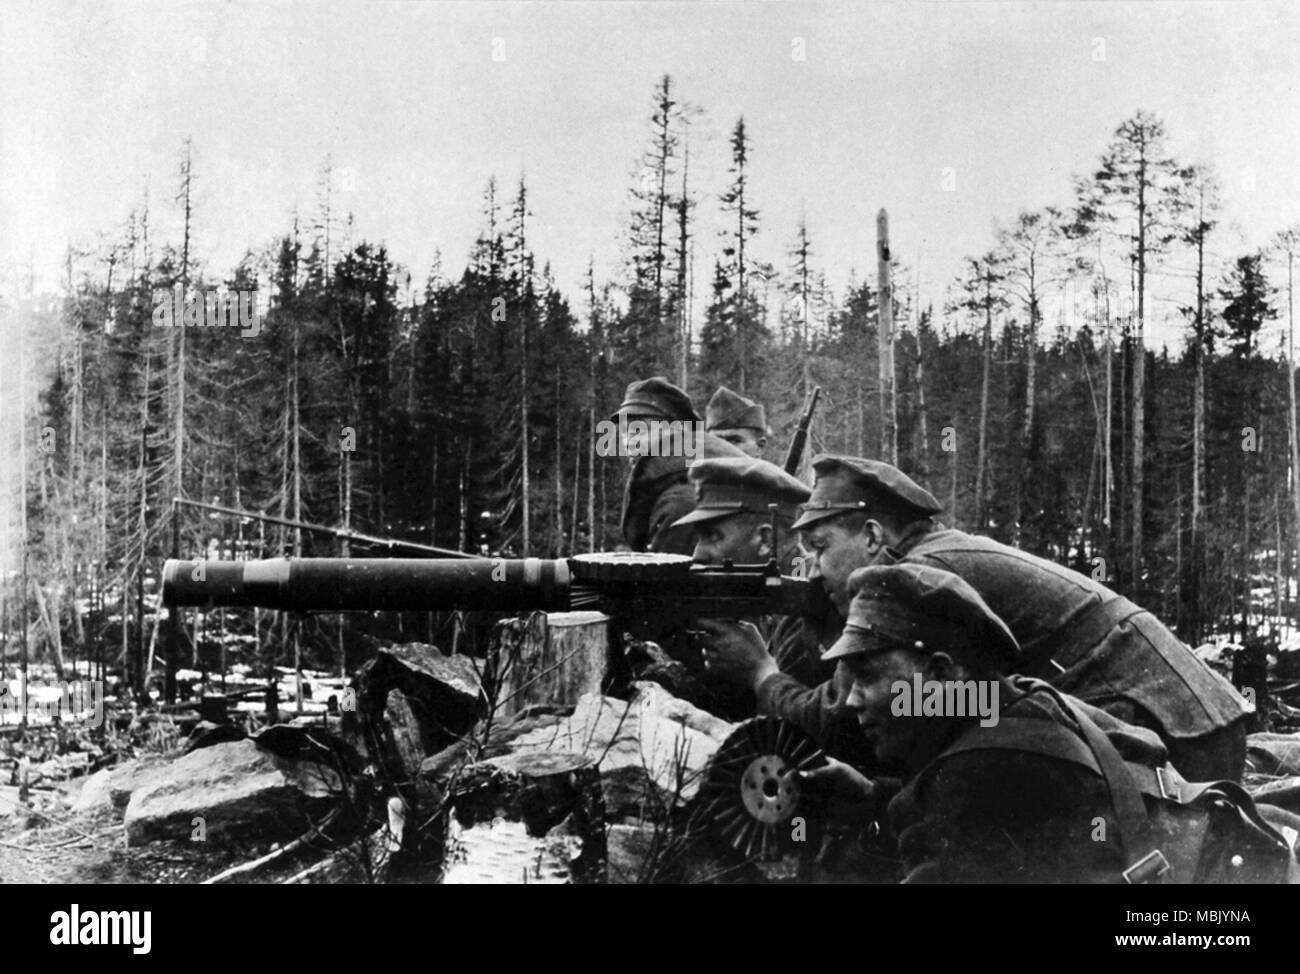 Russians on Don British uniforms & fire British Weapons - Stock Image